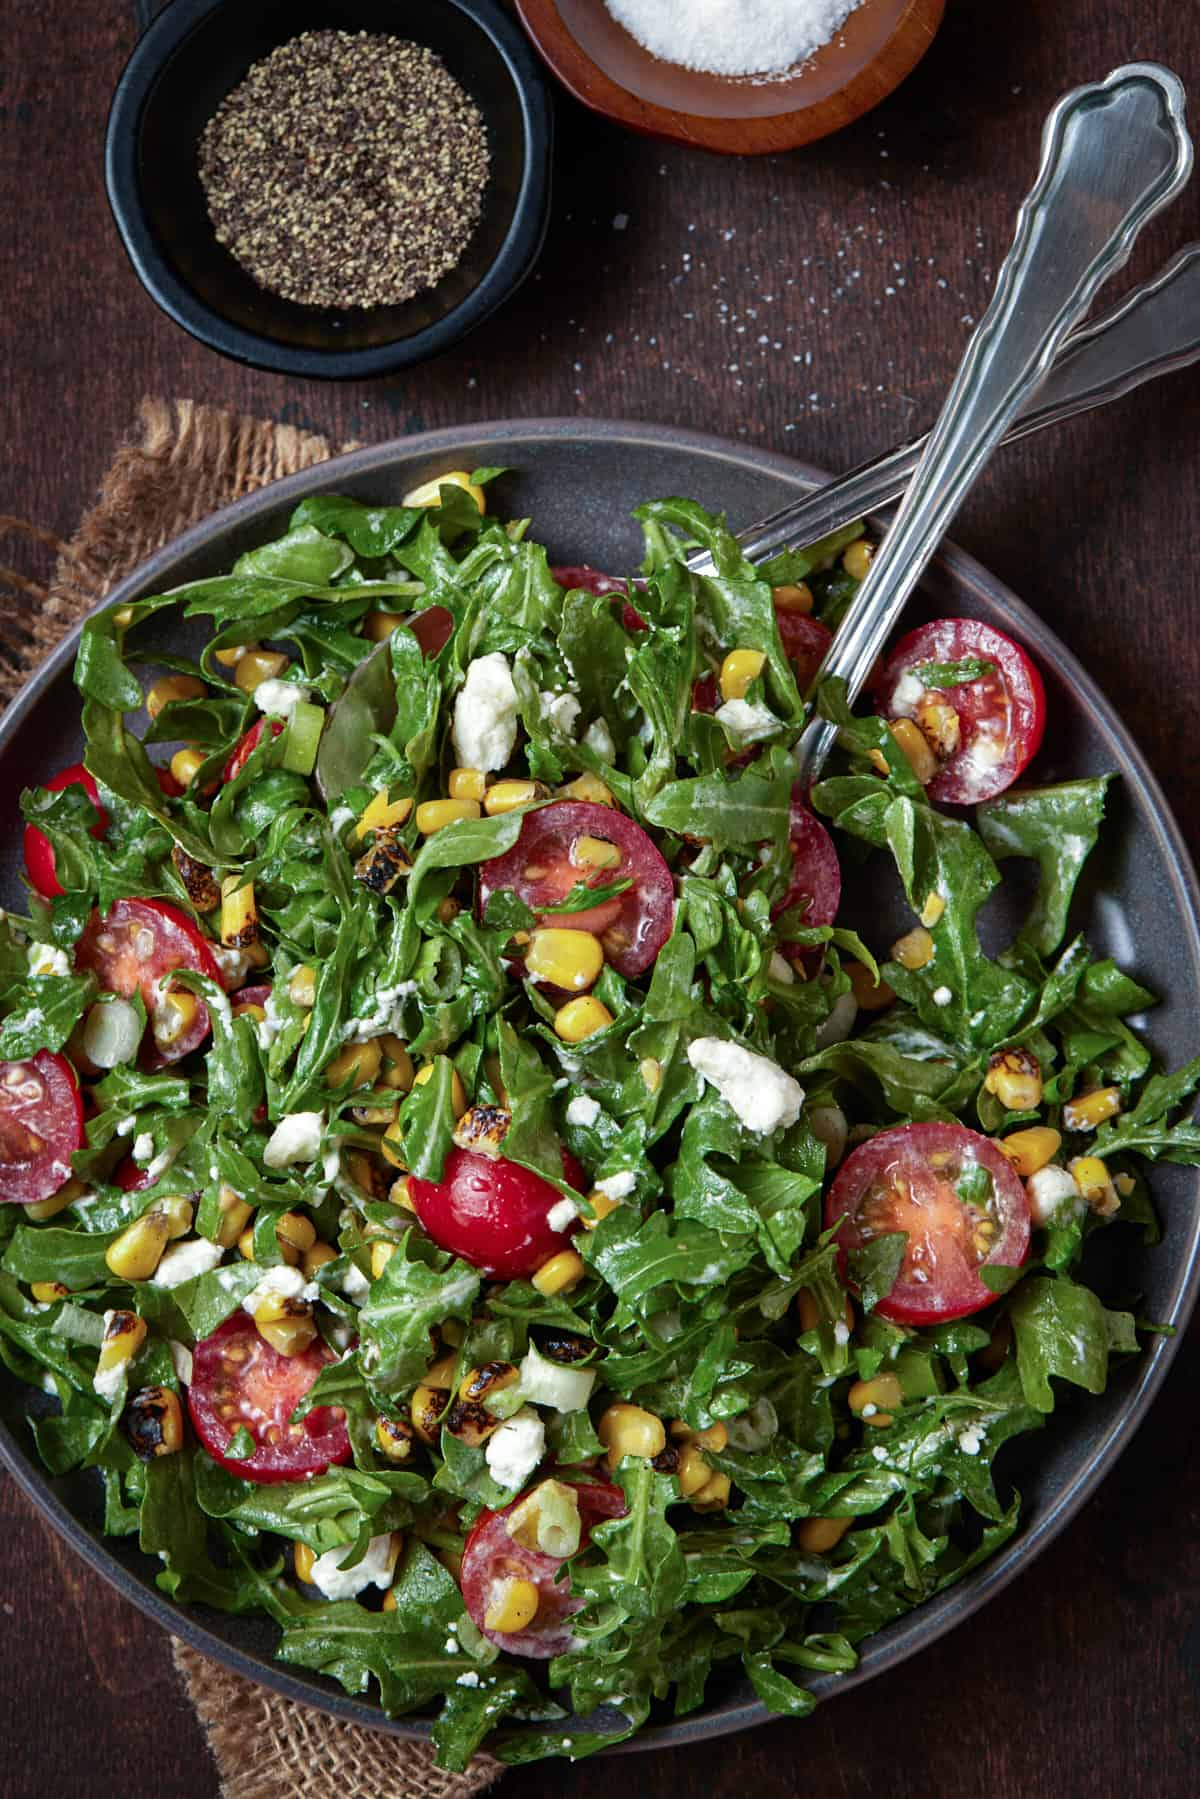 Plate of arugula salad with tomatoes, salt and pepper and serving spoons.